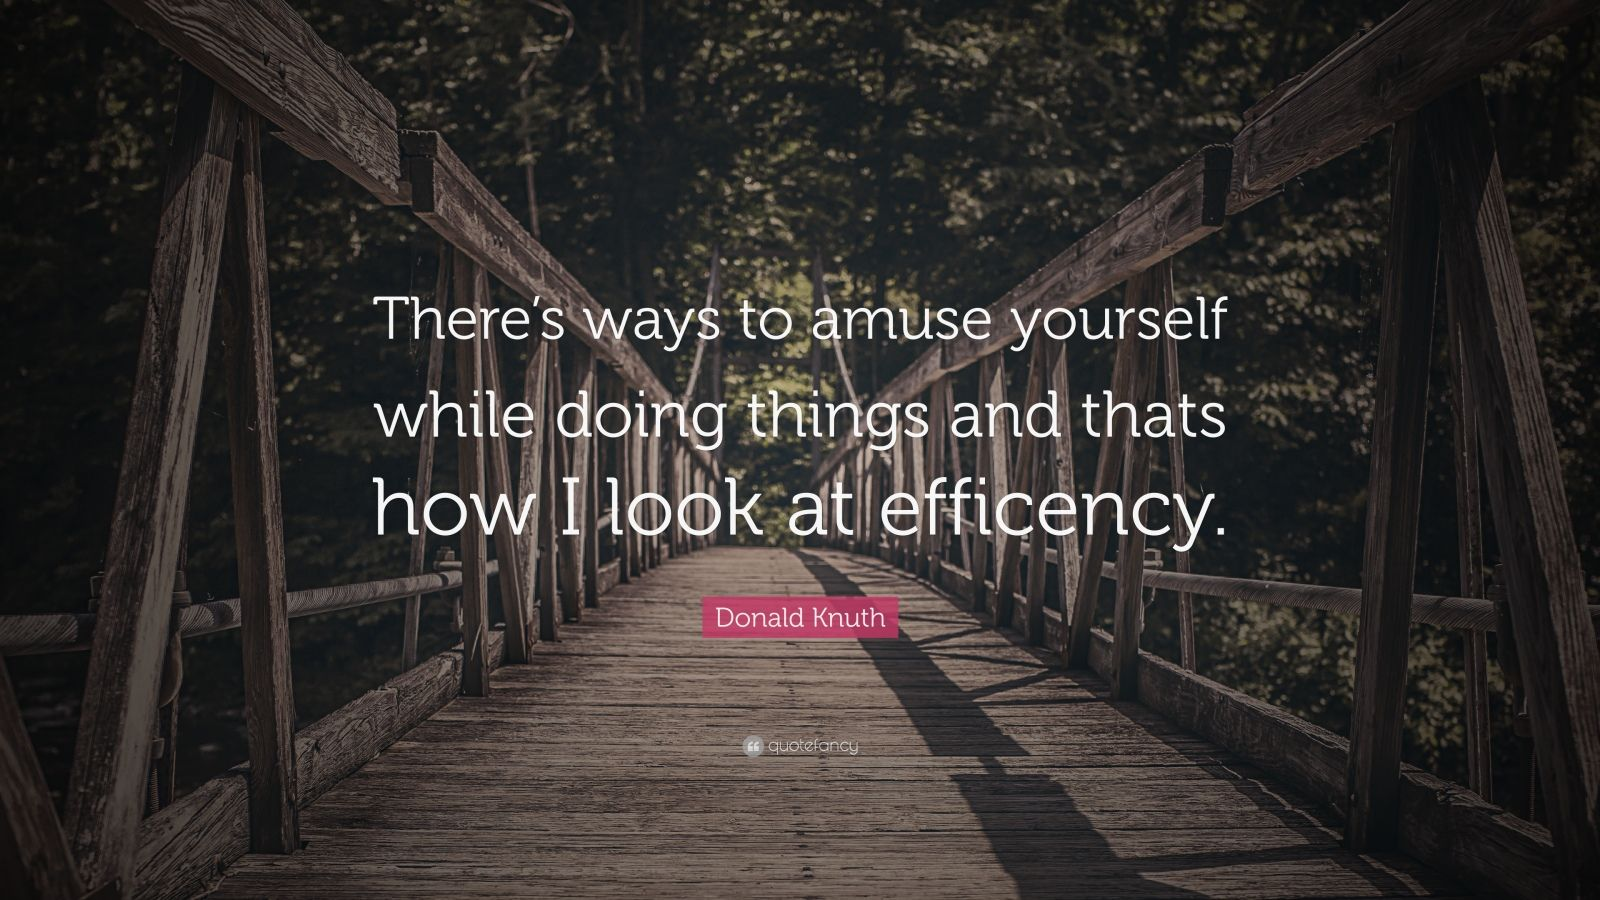 """Donald Knuth Quote: """"There's ways to amuse yourself while doing things and thats how I look at efficency."""""""